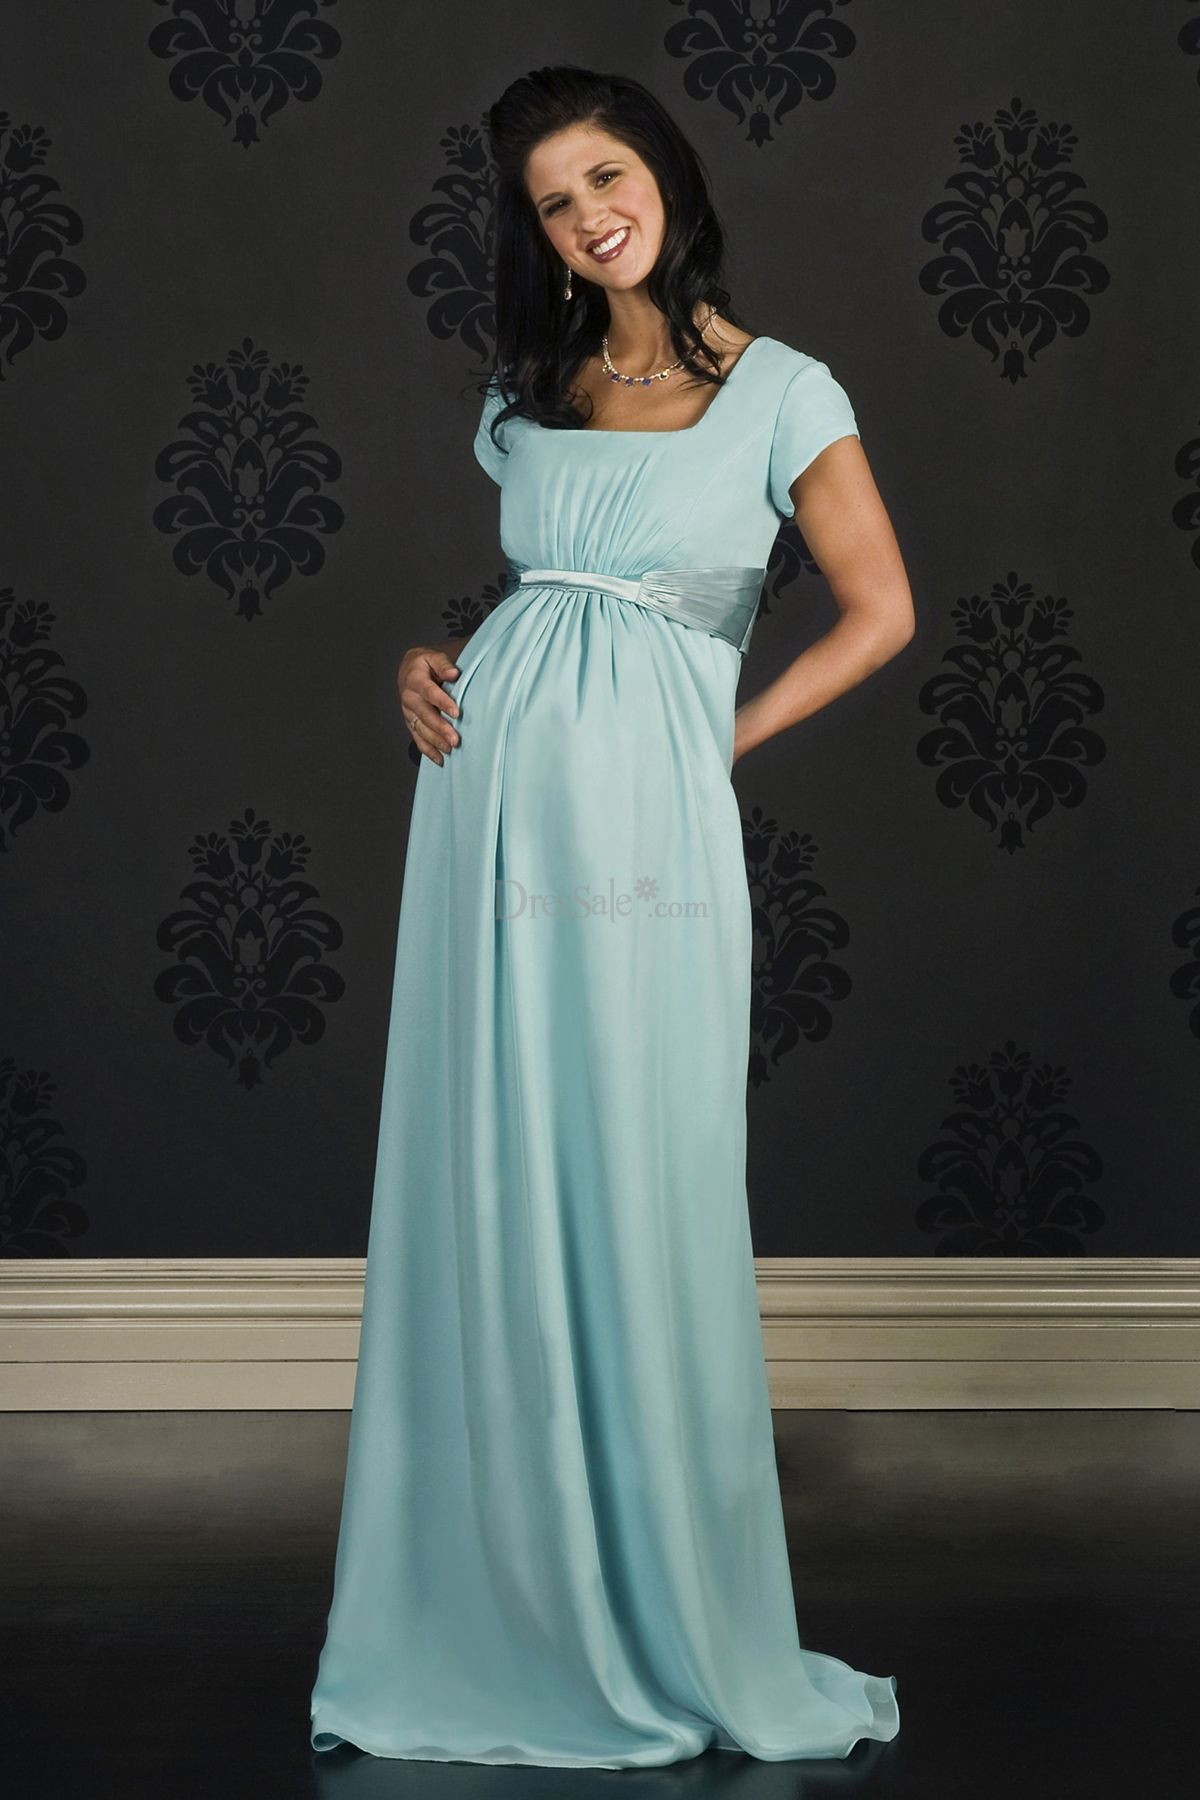 Modest empire square column bridesmaid dress for maternity for modest empire square column bridesmaid dress for maternity for laura ombrellifo Image collections